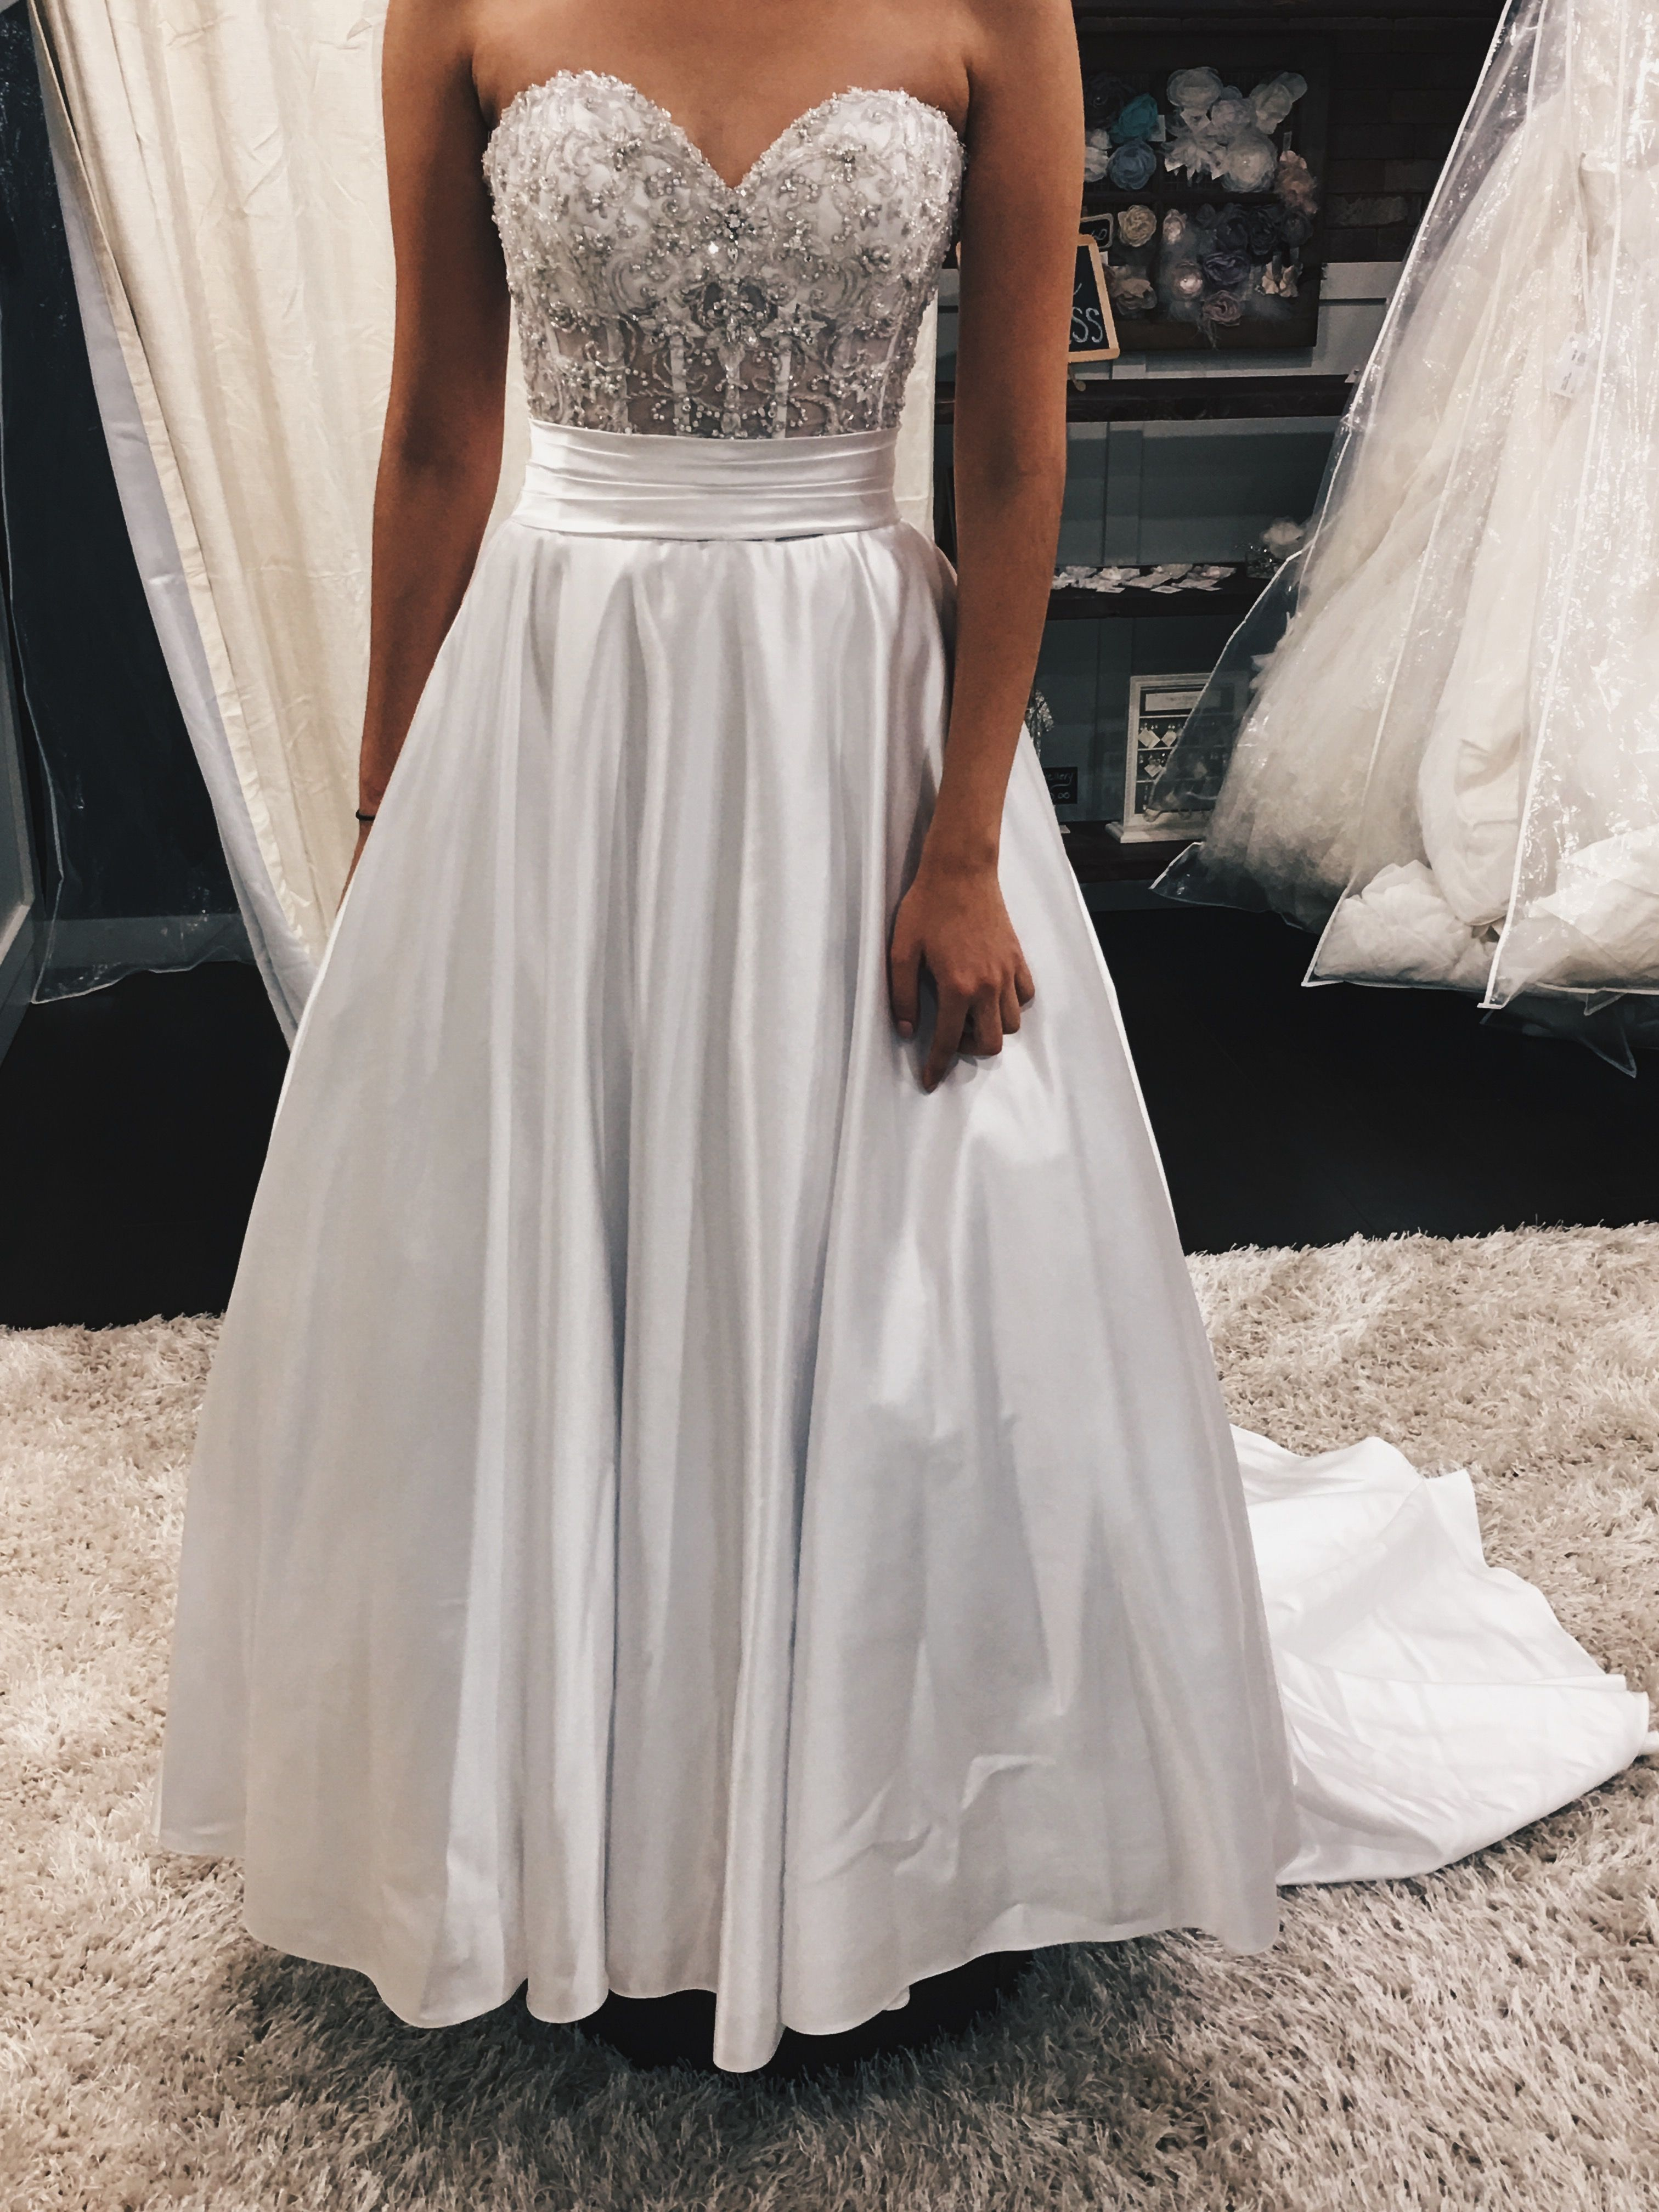 This gorgeous white dress is everything you need for your wedding day!